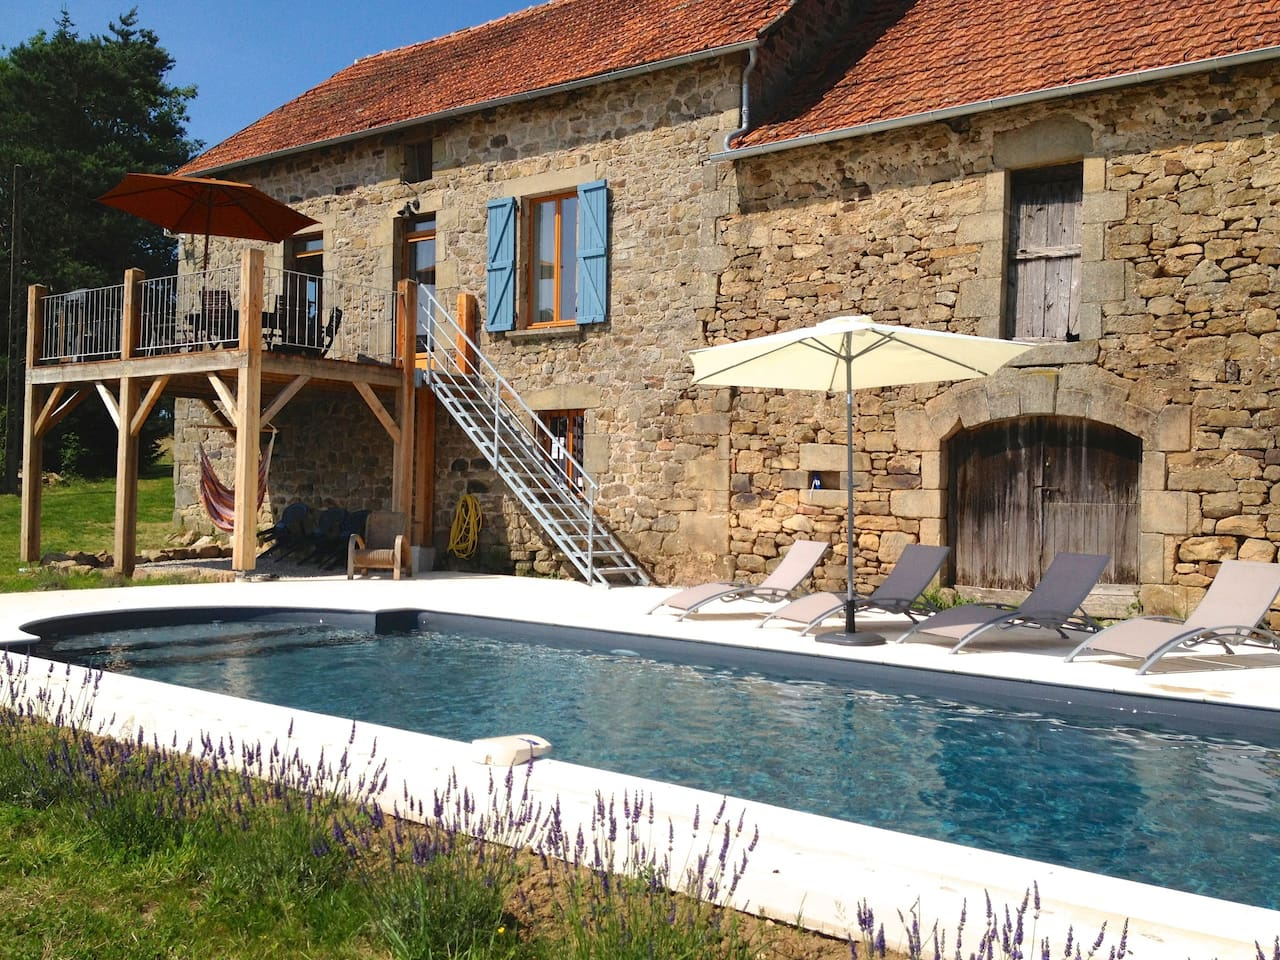 Luxury farmhouse in dordogne valley houses for rent in for Luxury farmhouses